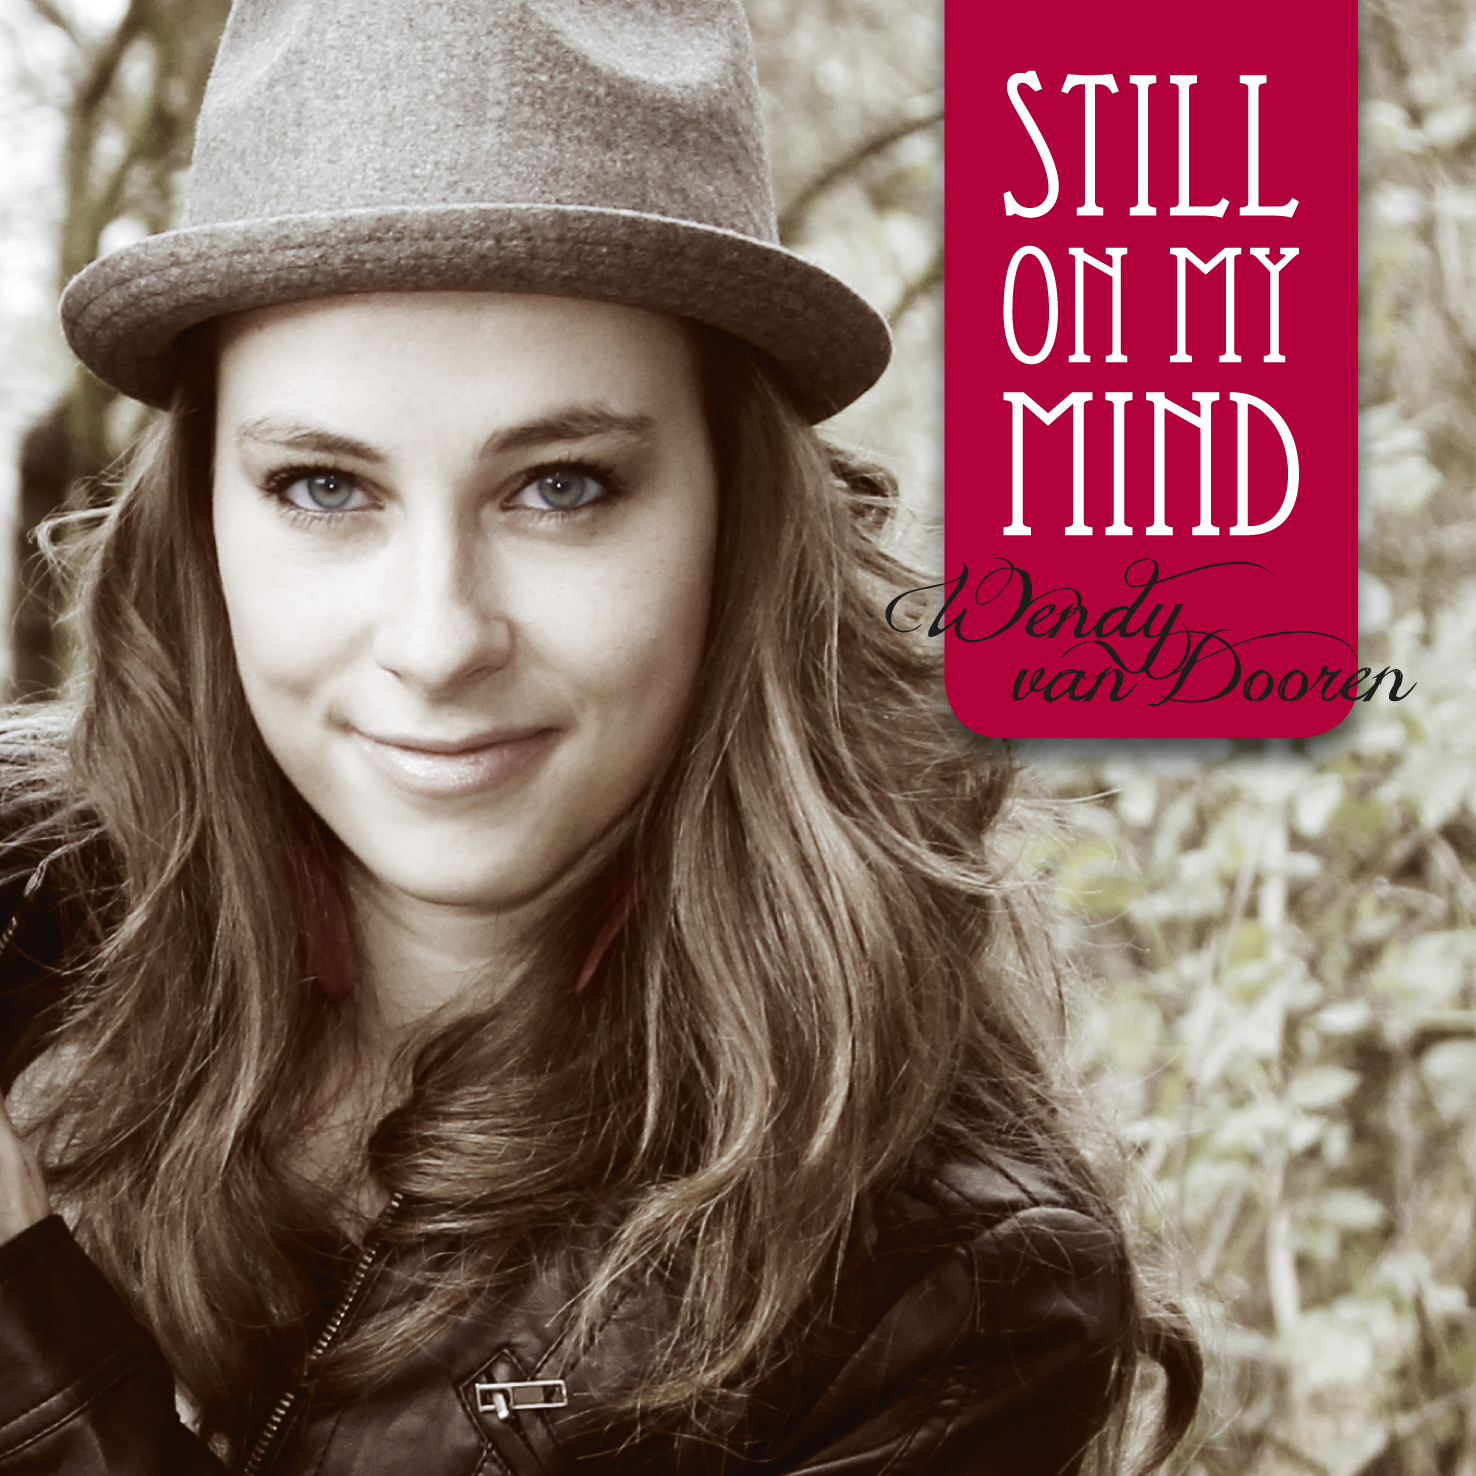 CD-single 'Still on my mind'